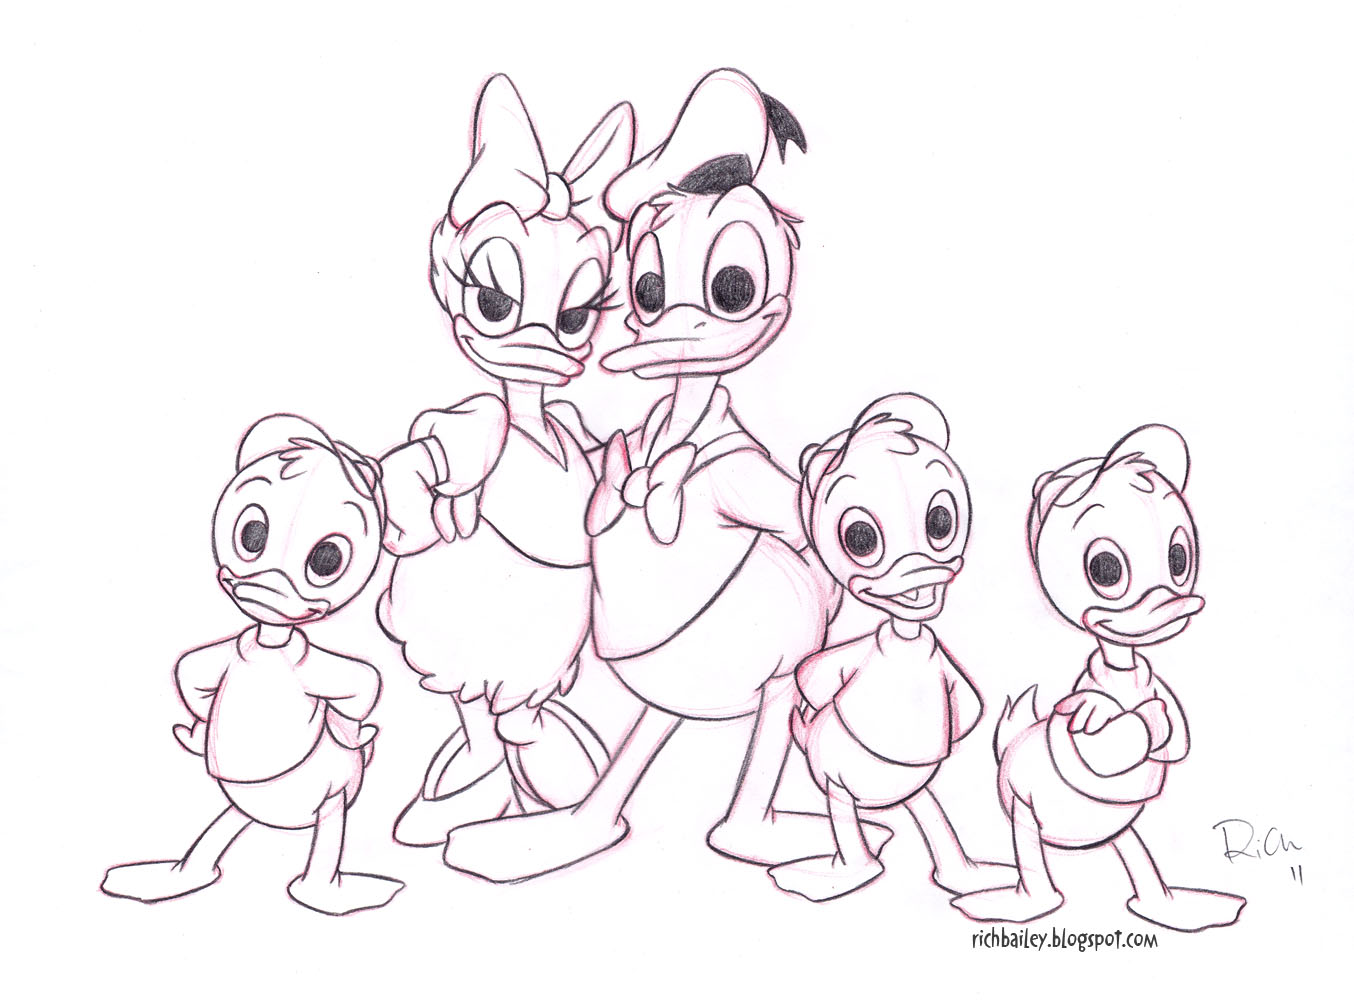 Donald Duck Drawing at GetDrawings.com | Free for personal use ...